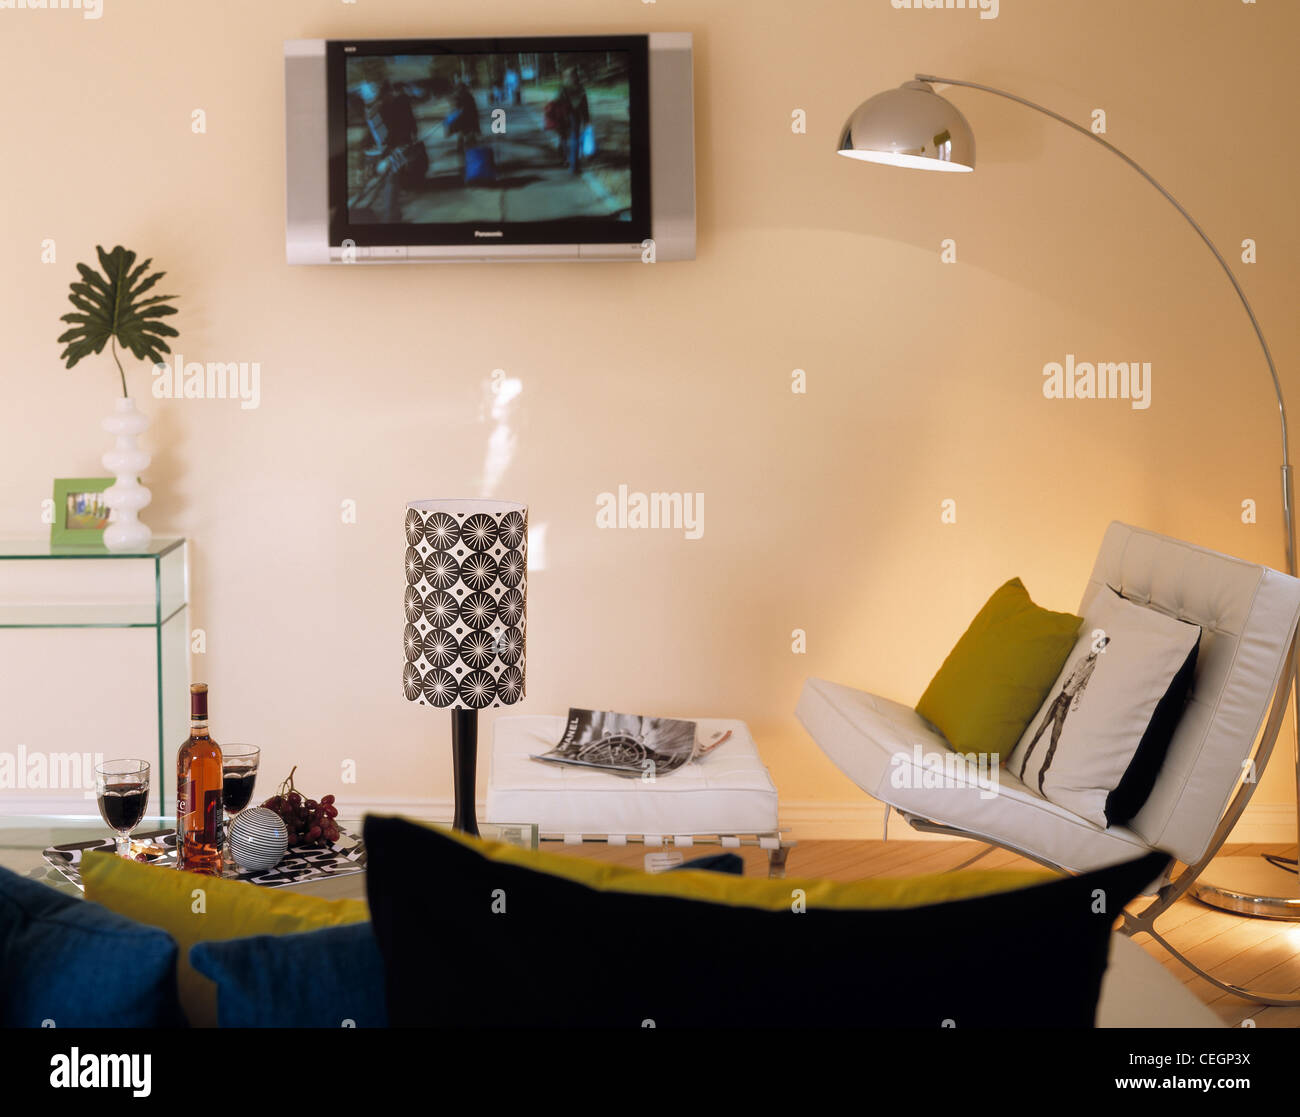 Lounge with wall mounted TV and standing lamp. - Stock Image